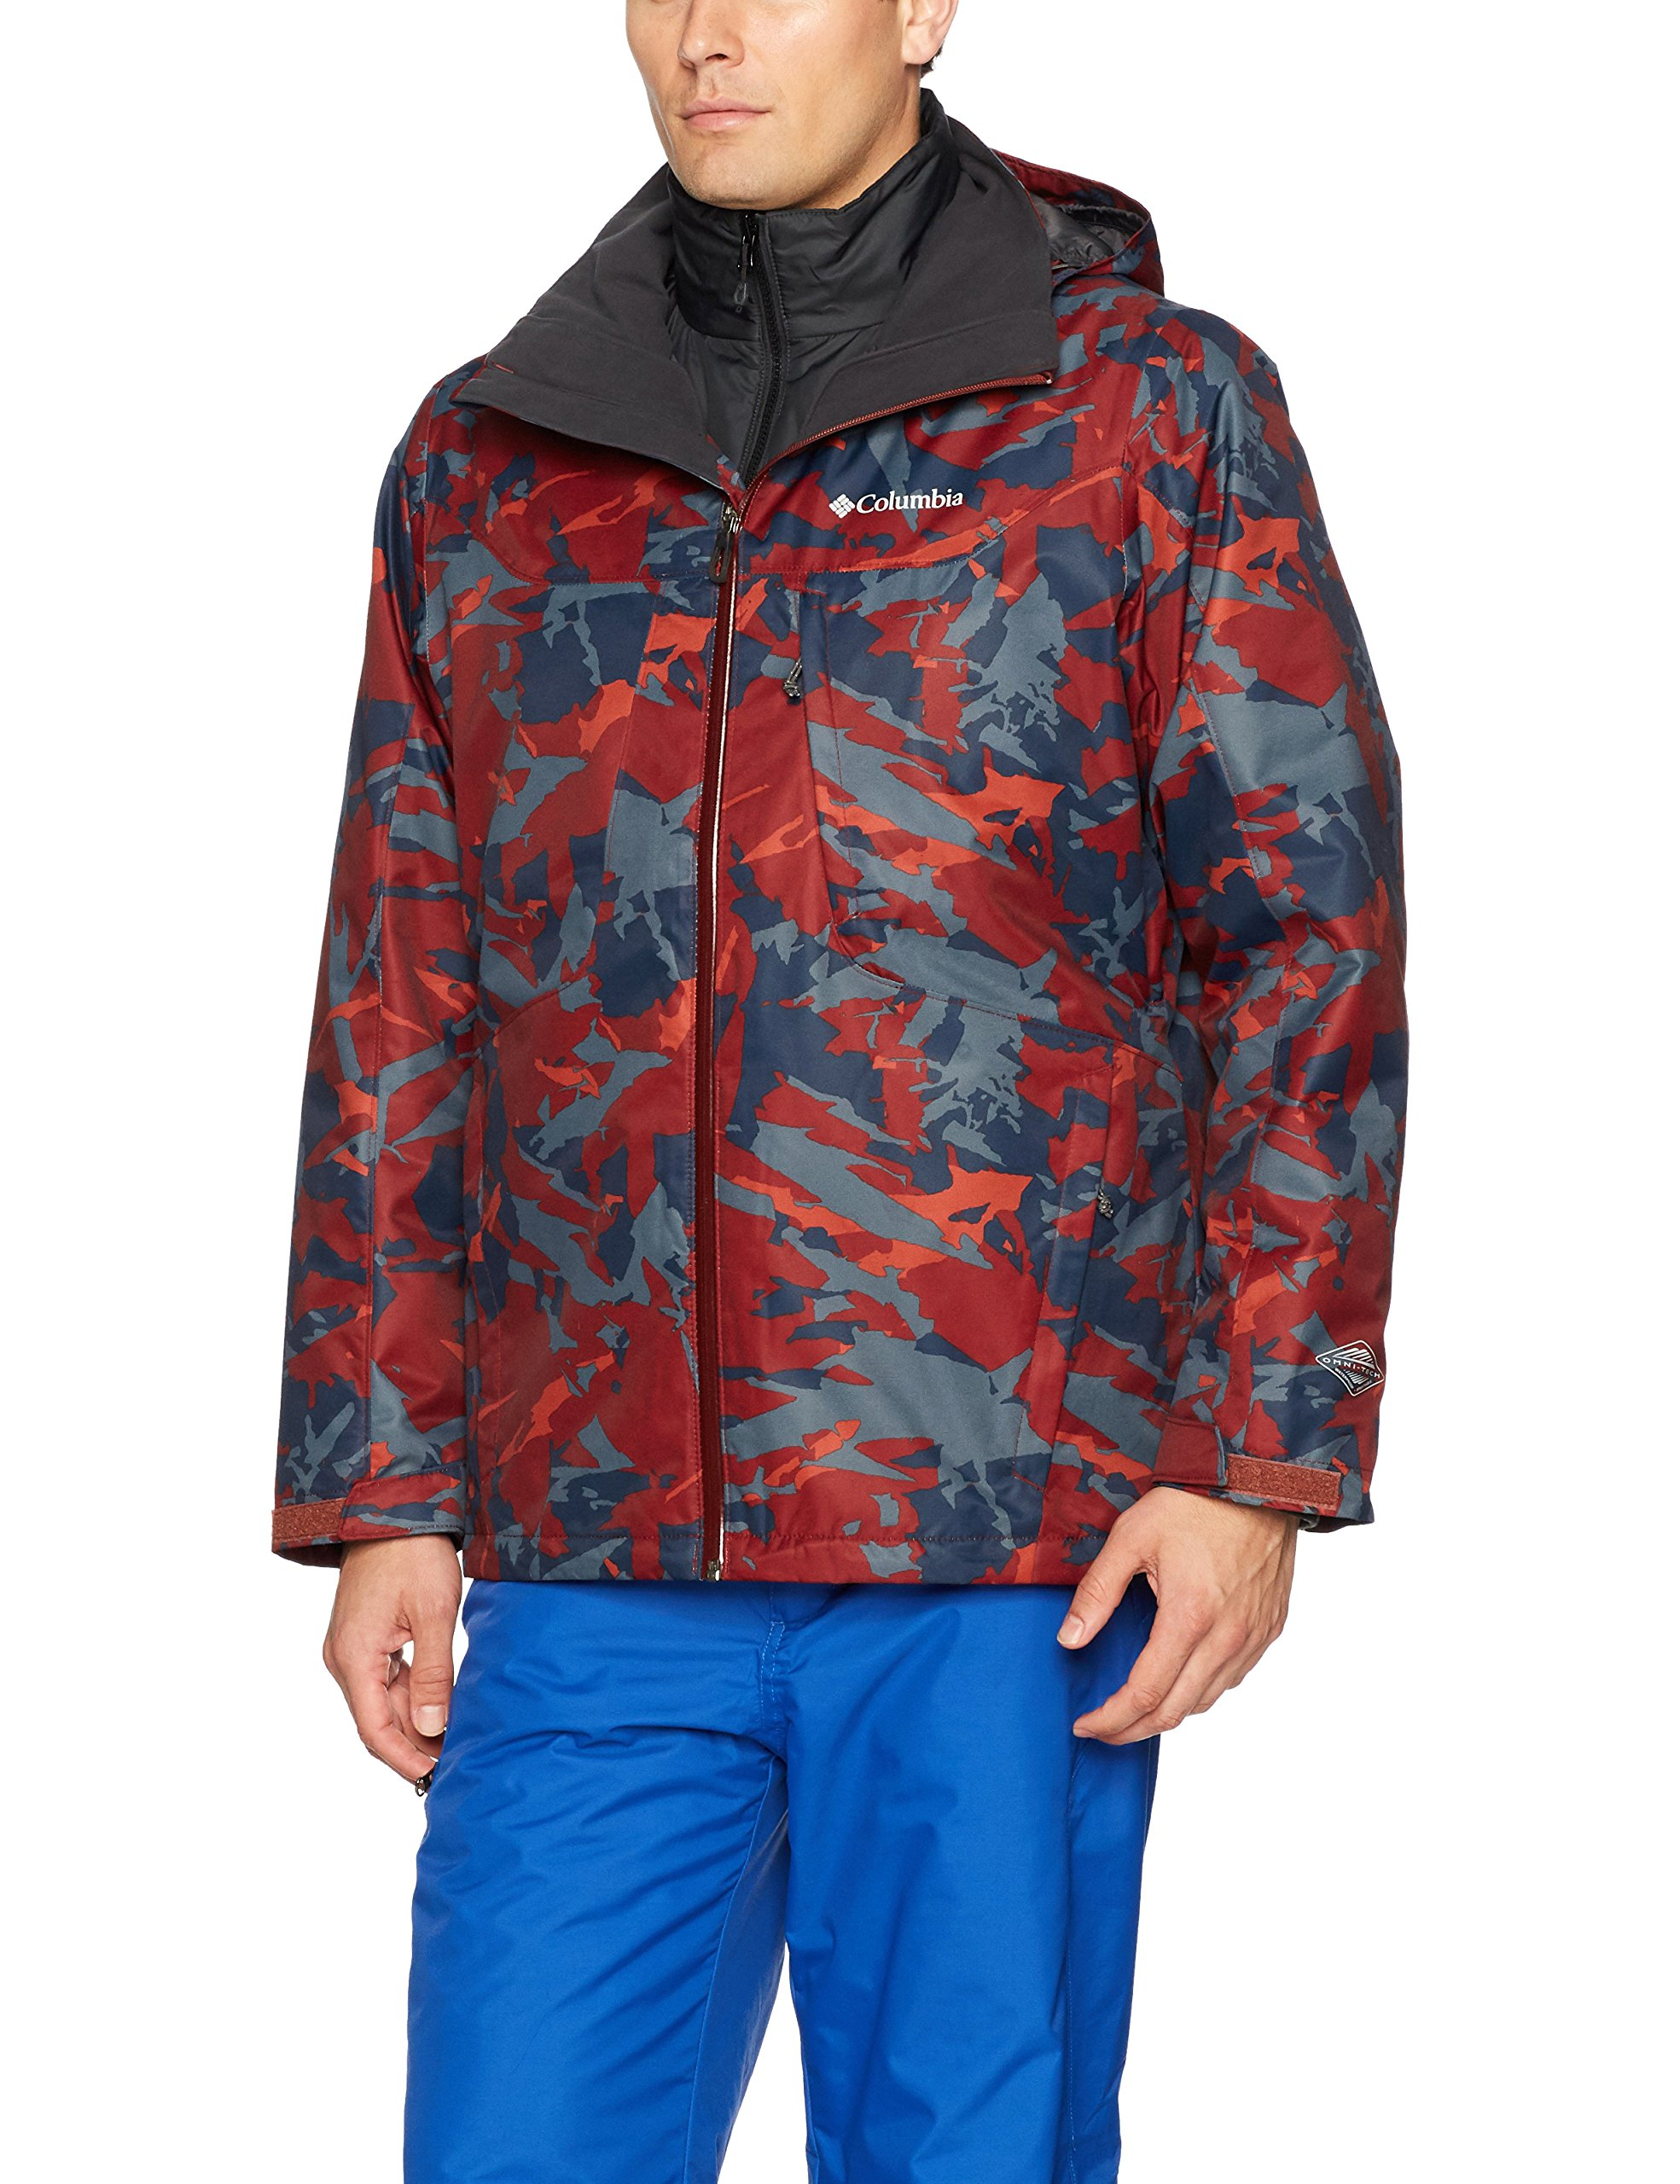 Columbia Men's Whirlibird Interchange Jacket, Medium, Deep Rust Camo